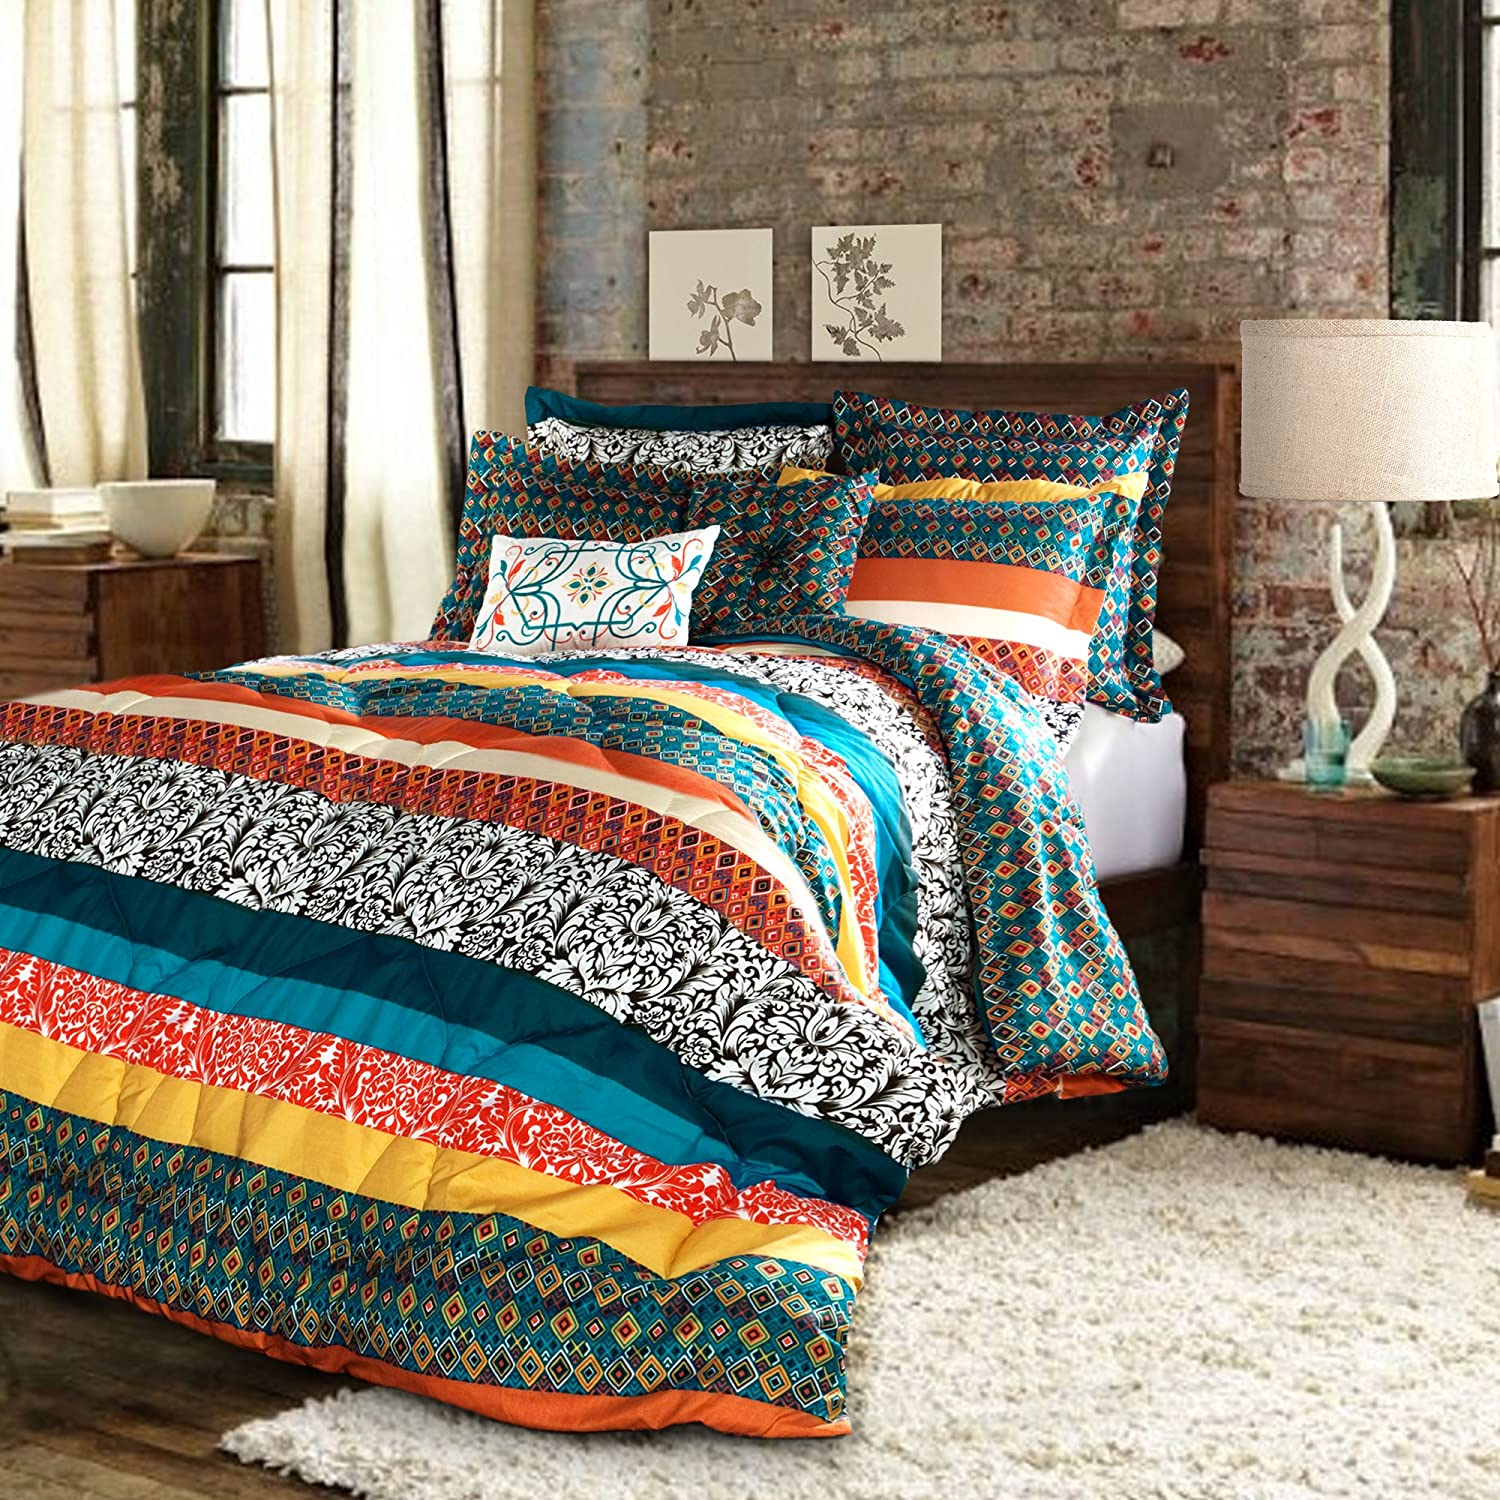 Lush Decor Boho Striped Comforter Bedding Colorful Pattern Bohemian Style Reversible 7 Piece Set, Full - Queen, Turquoise & Tangerine